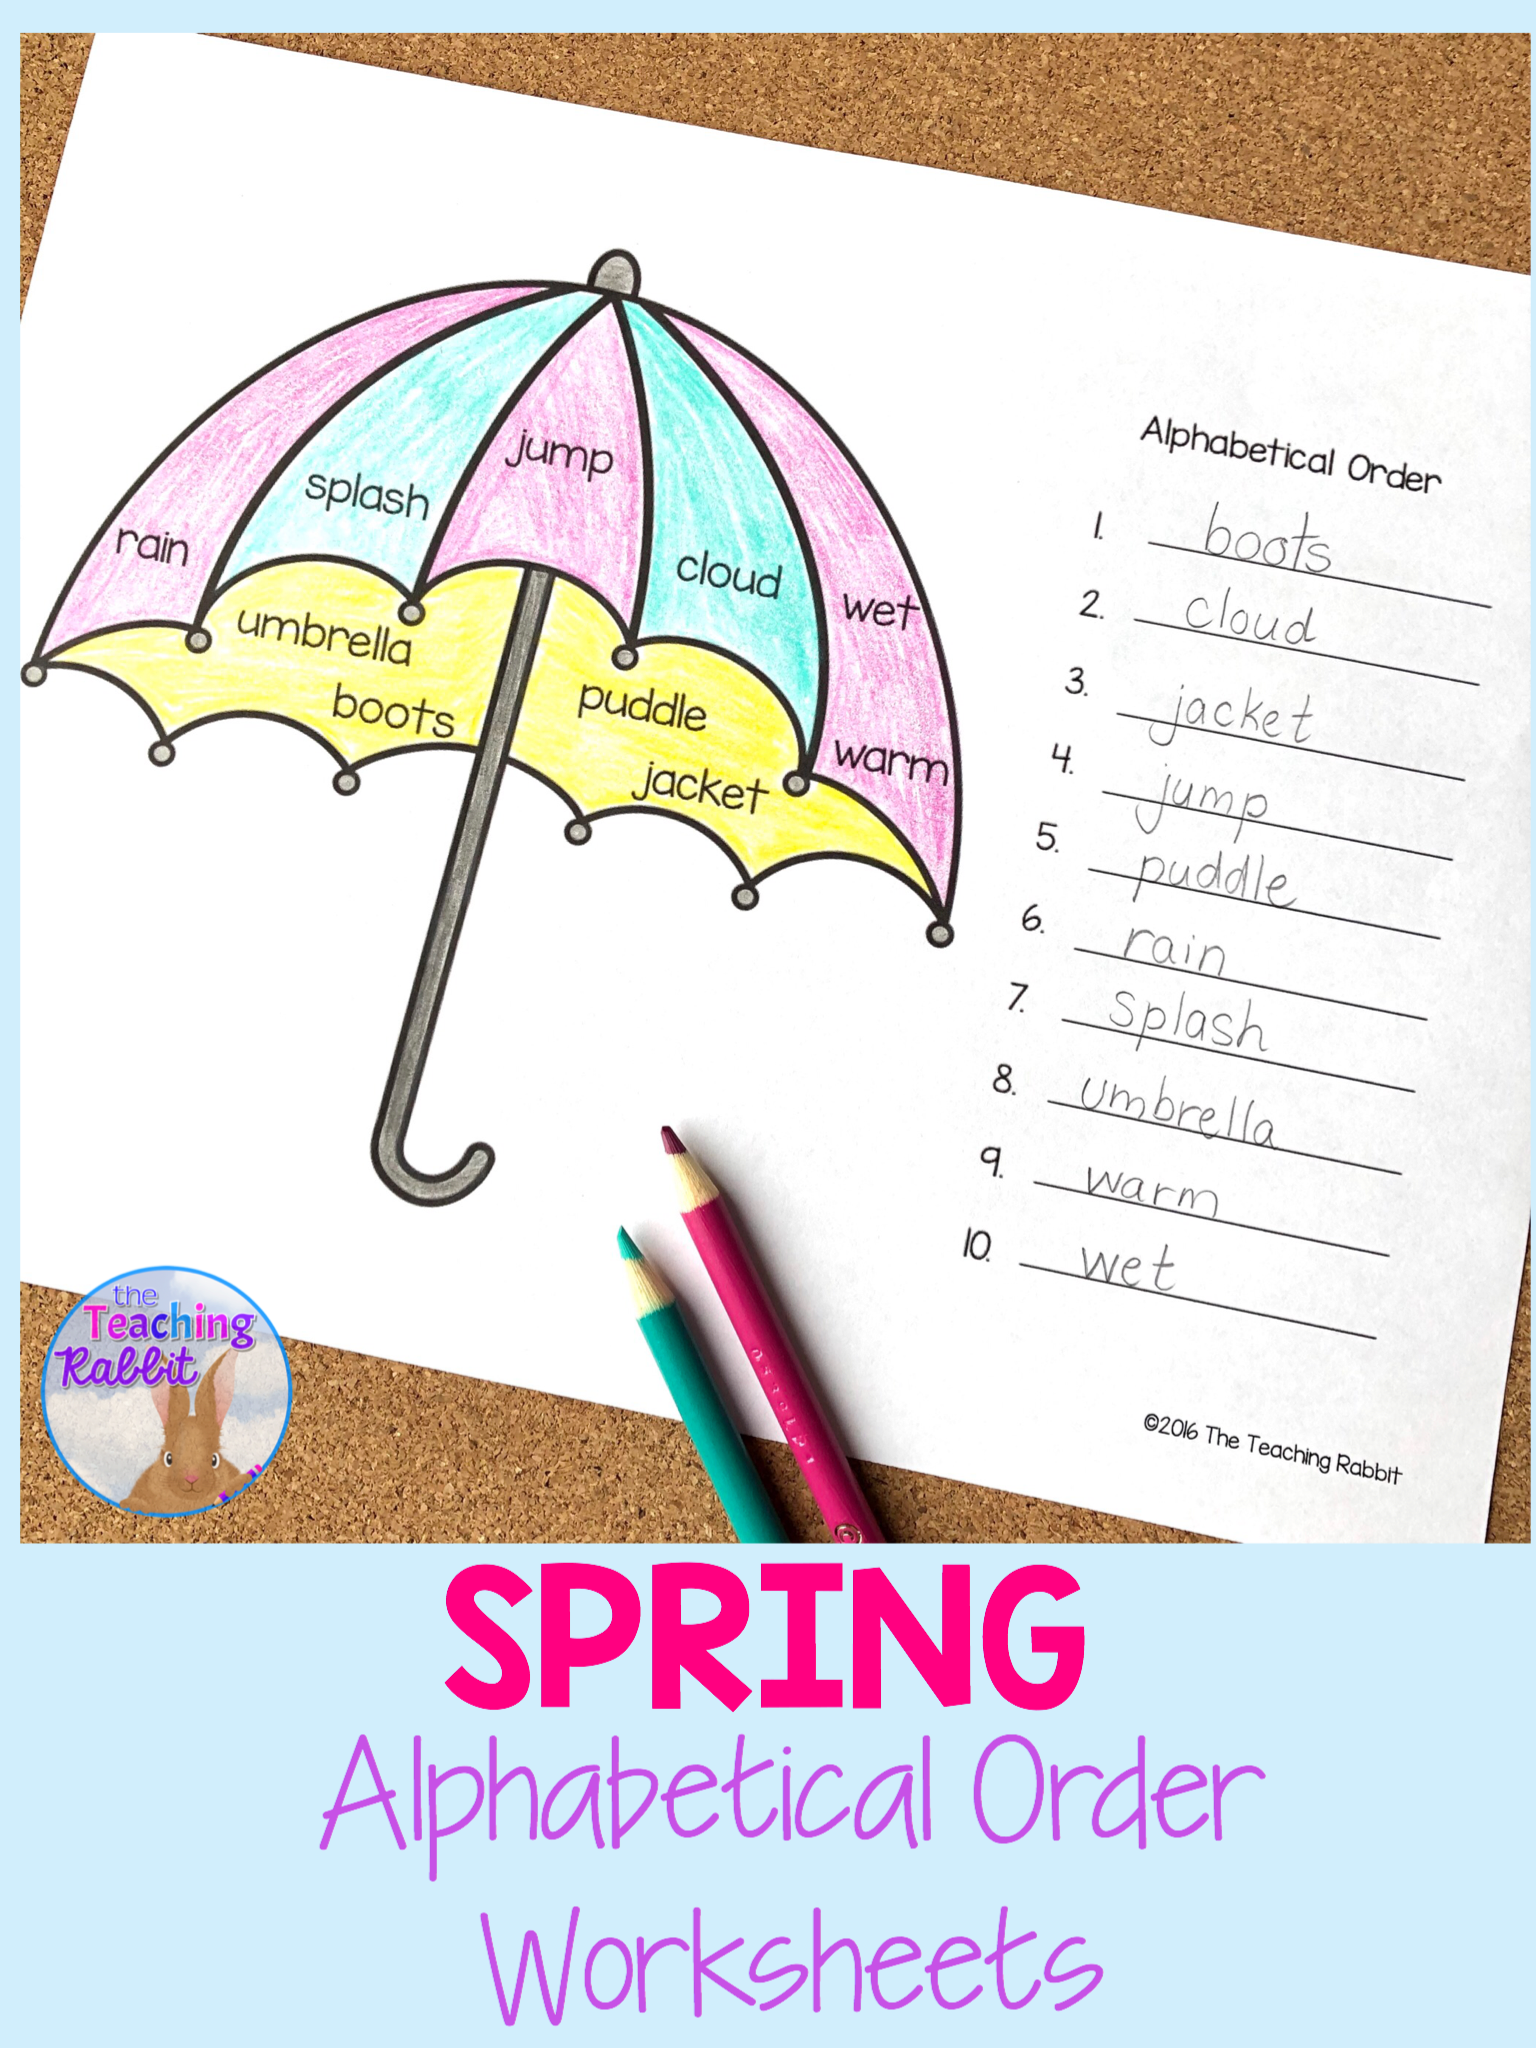 Alphabetical Order Worksheets Spring In